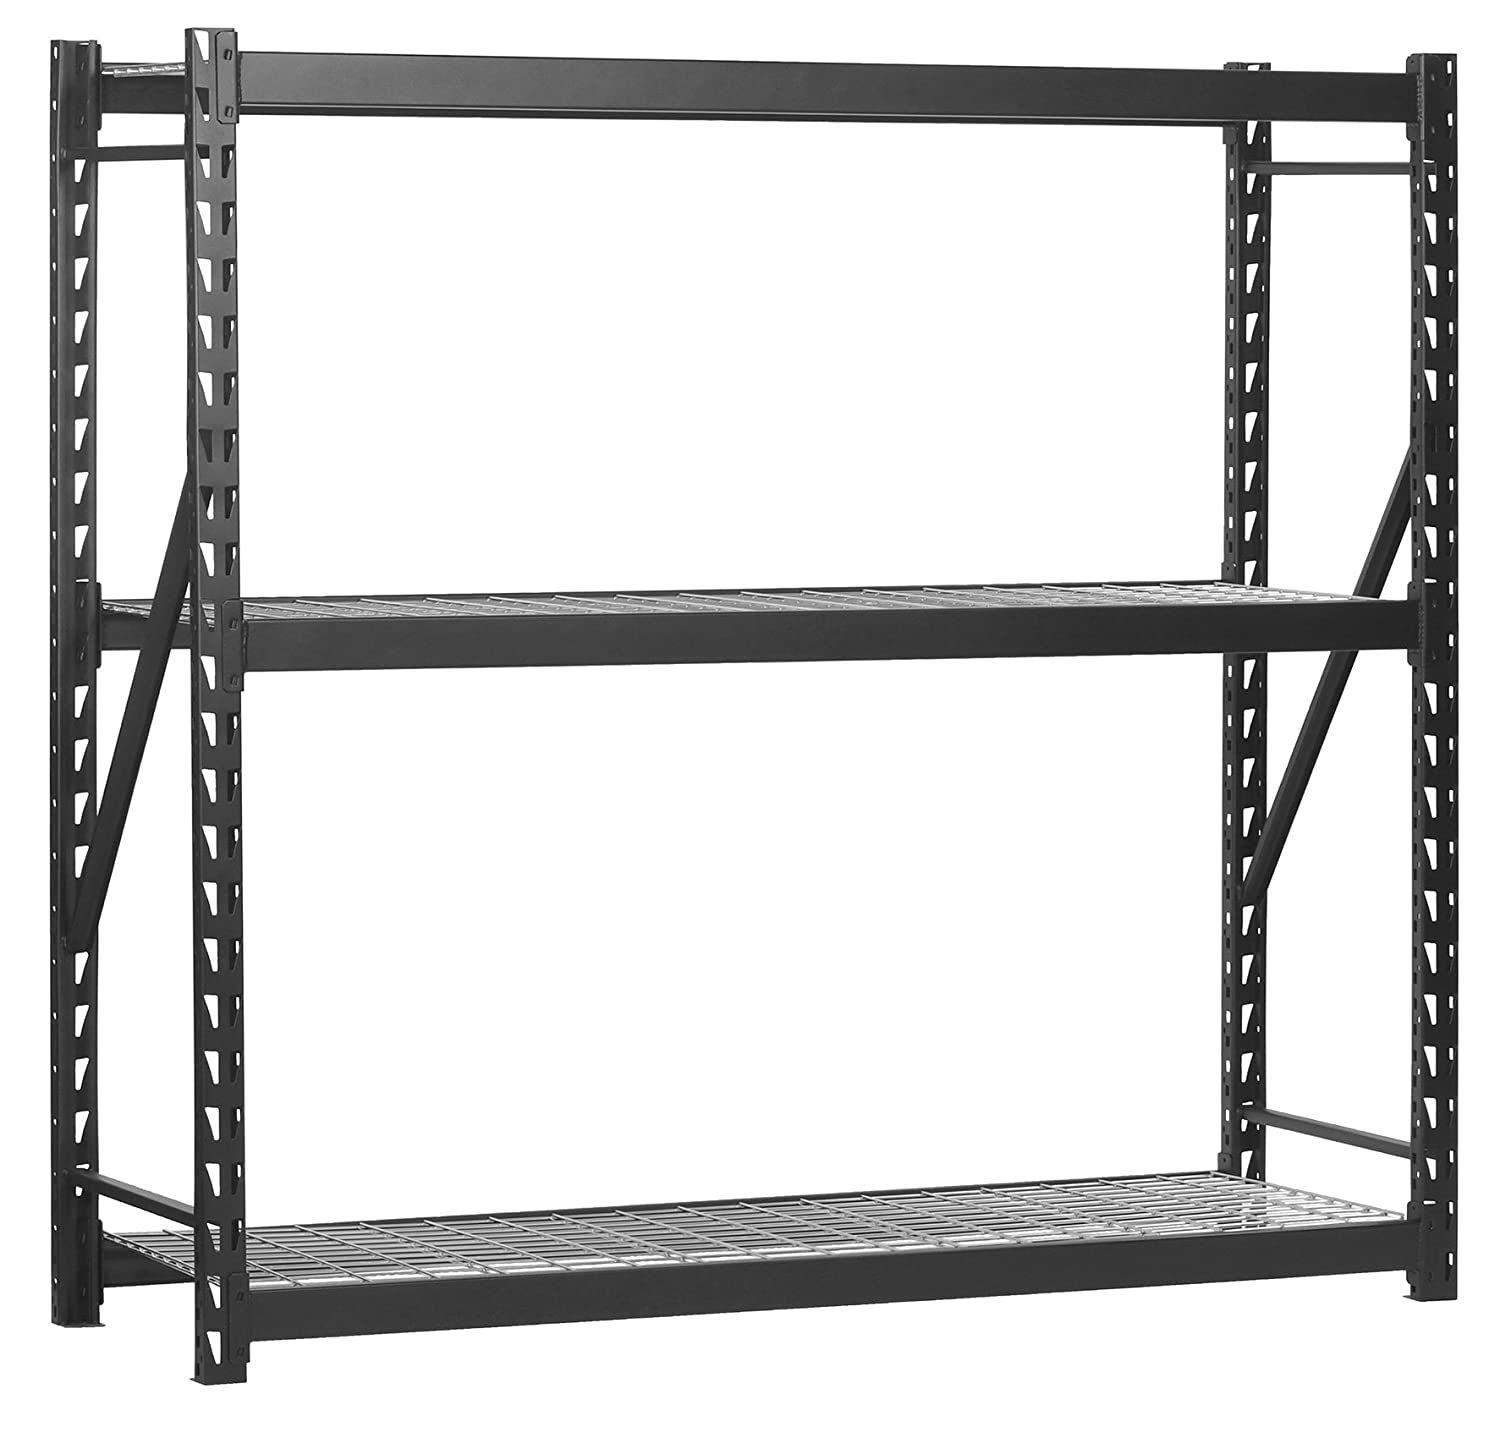 "Muscle Rack Erz772472wl3 Black Heavy Duty Steel Welded Storage Rack, 3  Shelves, 1,000 Lb Capacity Per Shelf, 72"" Height X 77"" Width X 24"" Depth"